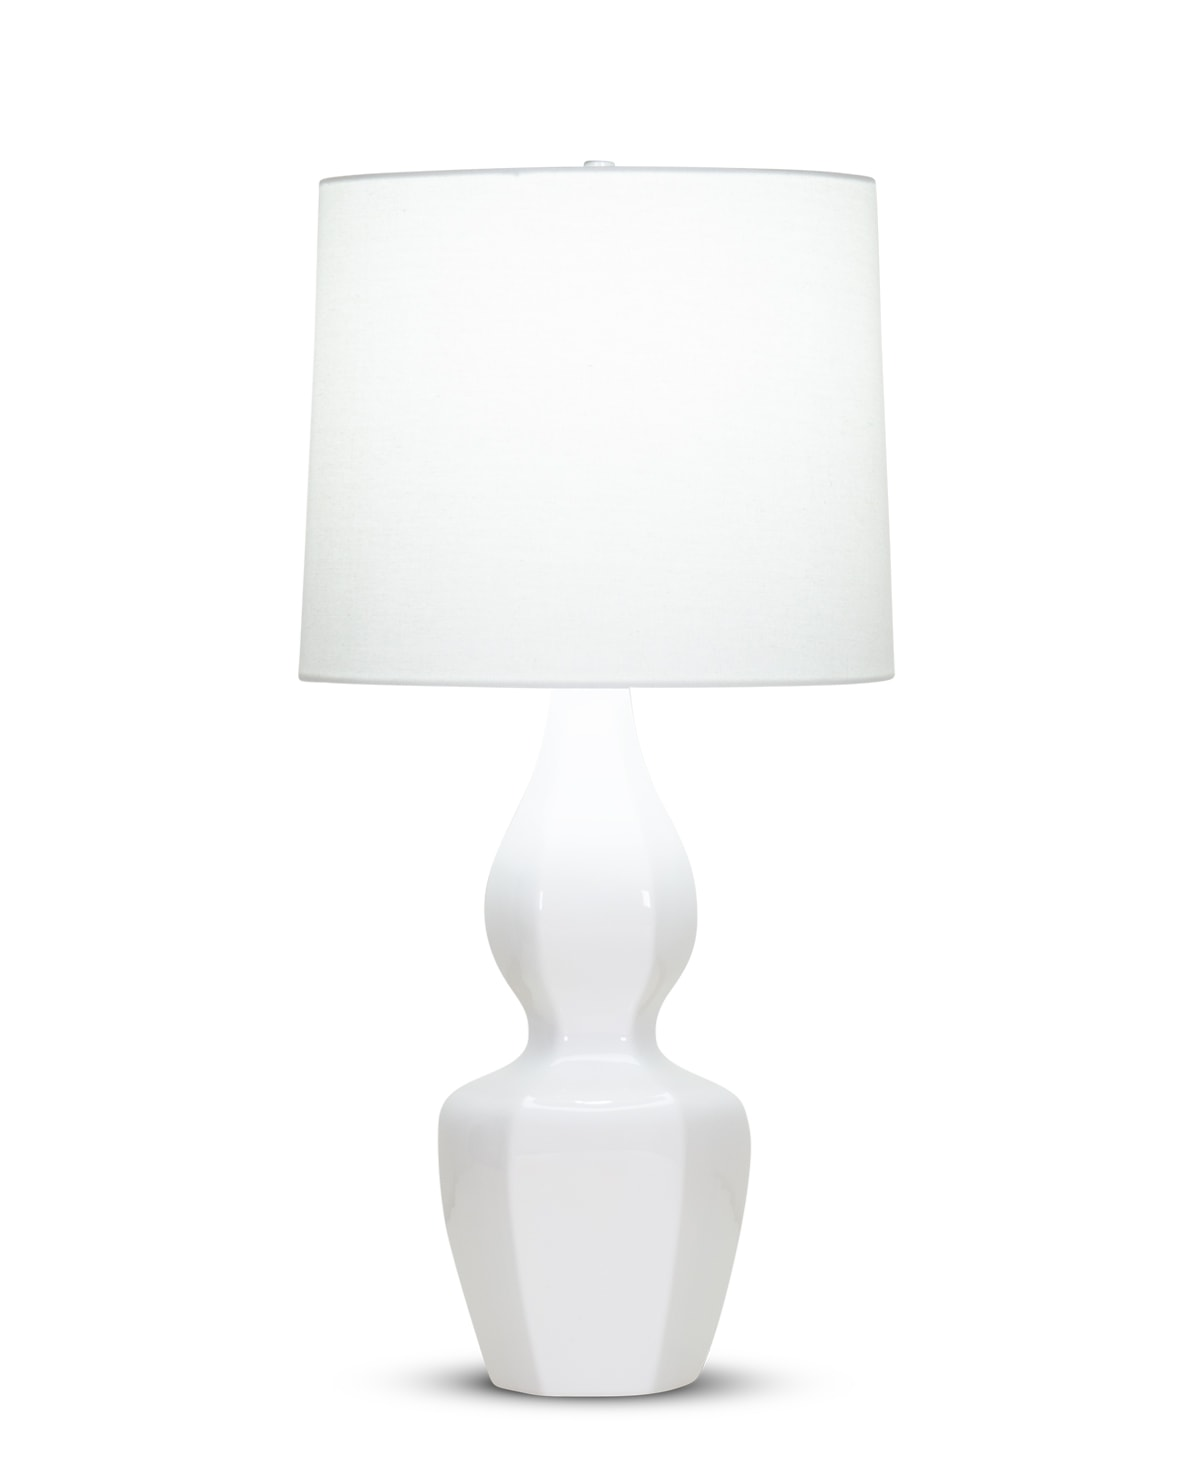 FlowDecor Claire Table Lamp in ceramic with off-white finish and off-white linen tapered drum shade (# 4352)